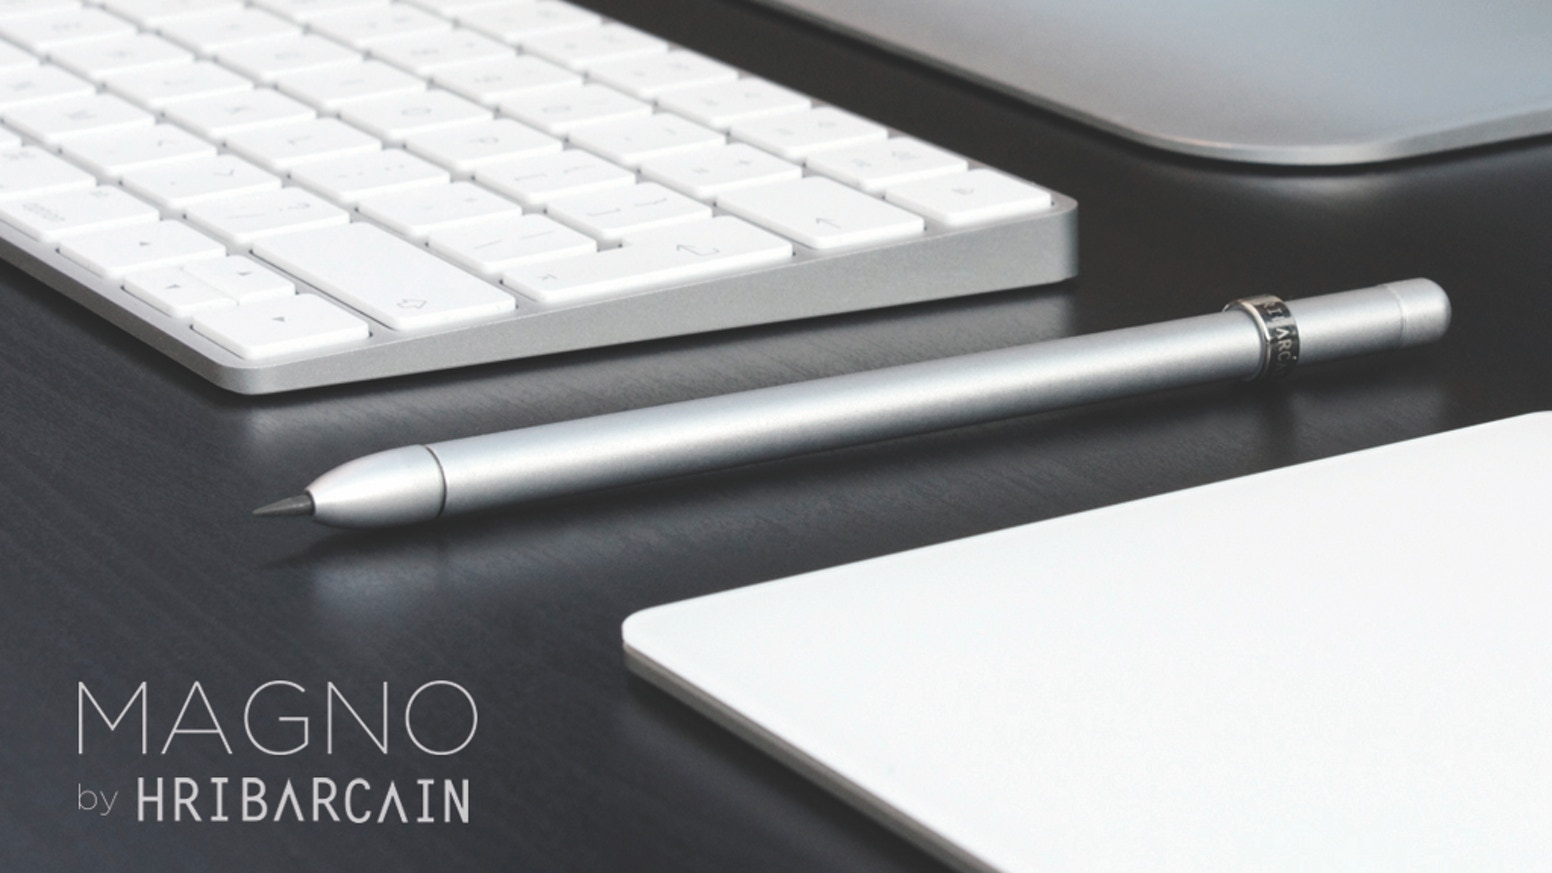 MAGNO has revolutionised mechanical pencil technology in the most unique way...